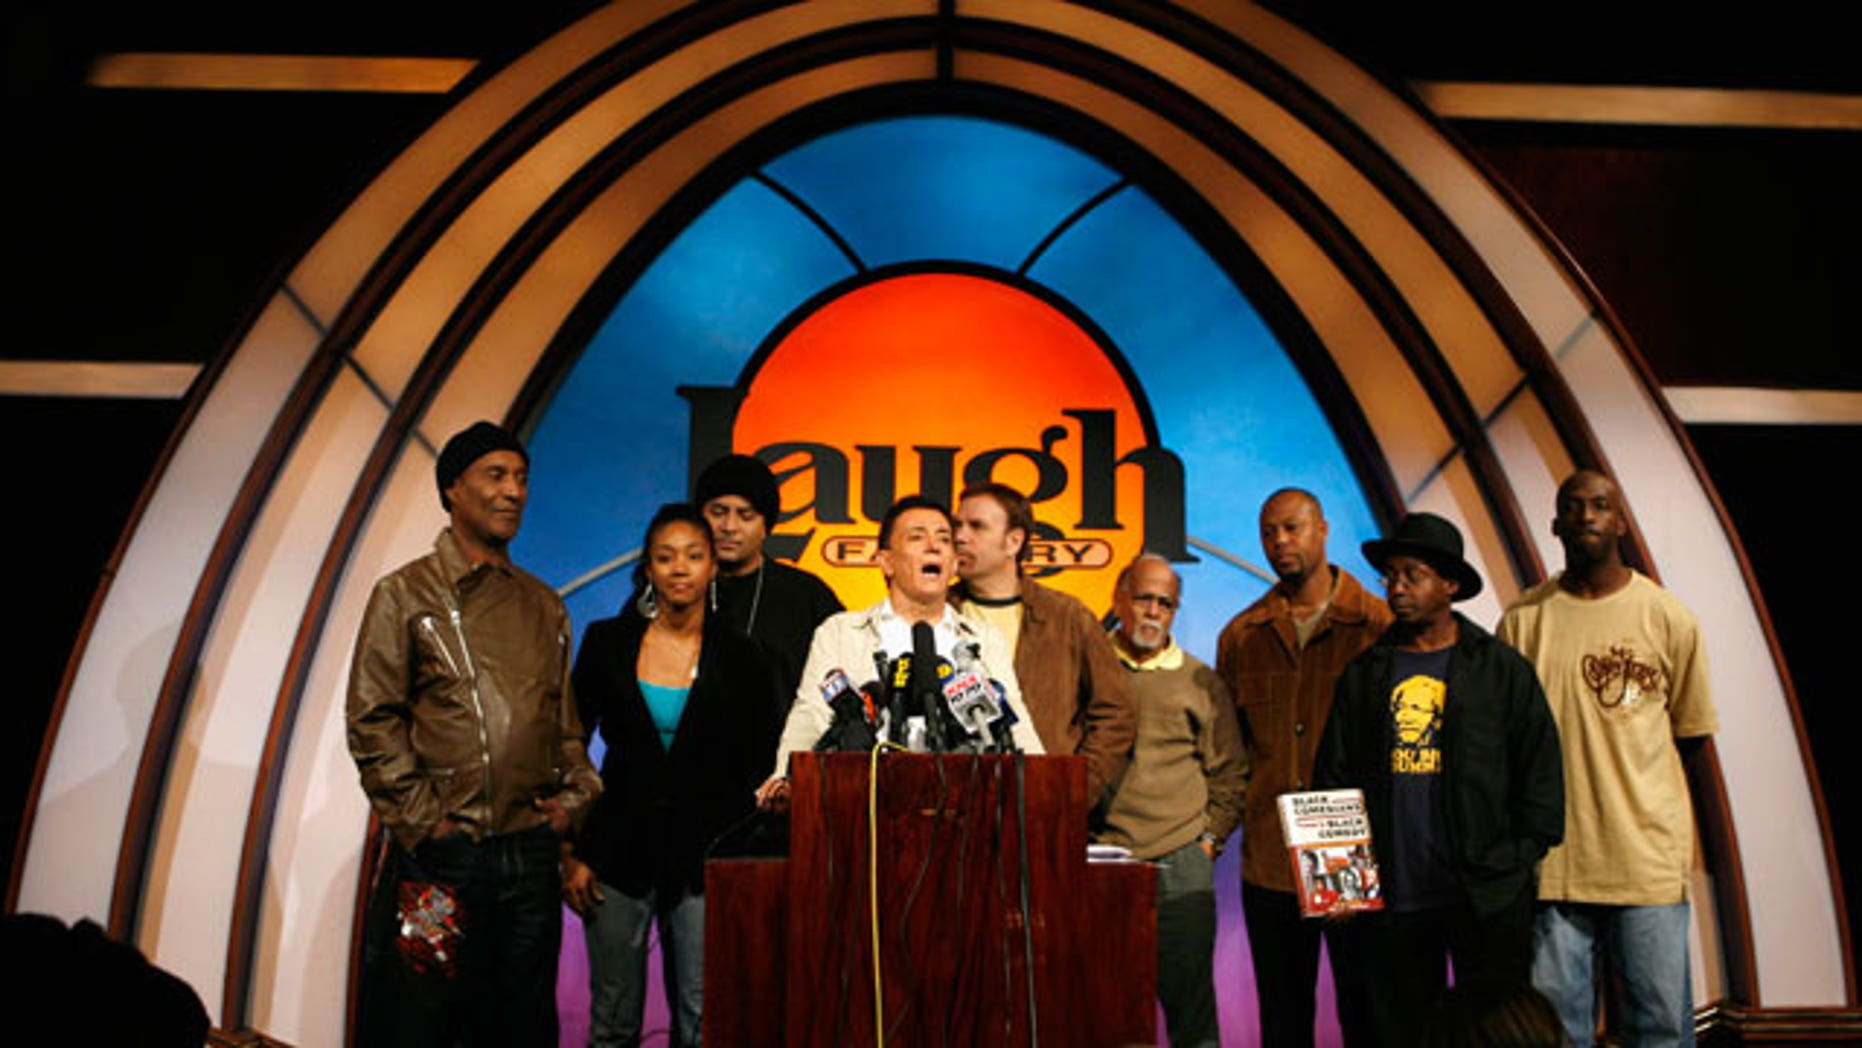 FILE: Jamie Masada speaks at the Laugh Factory comedy club in West Hollywood. (Reuters)